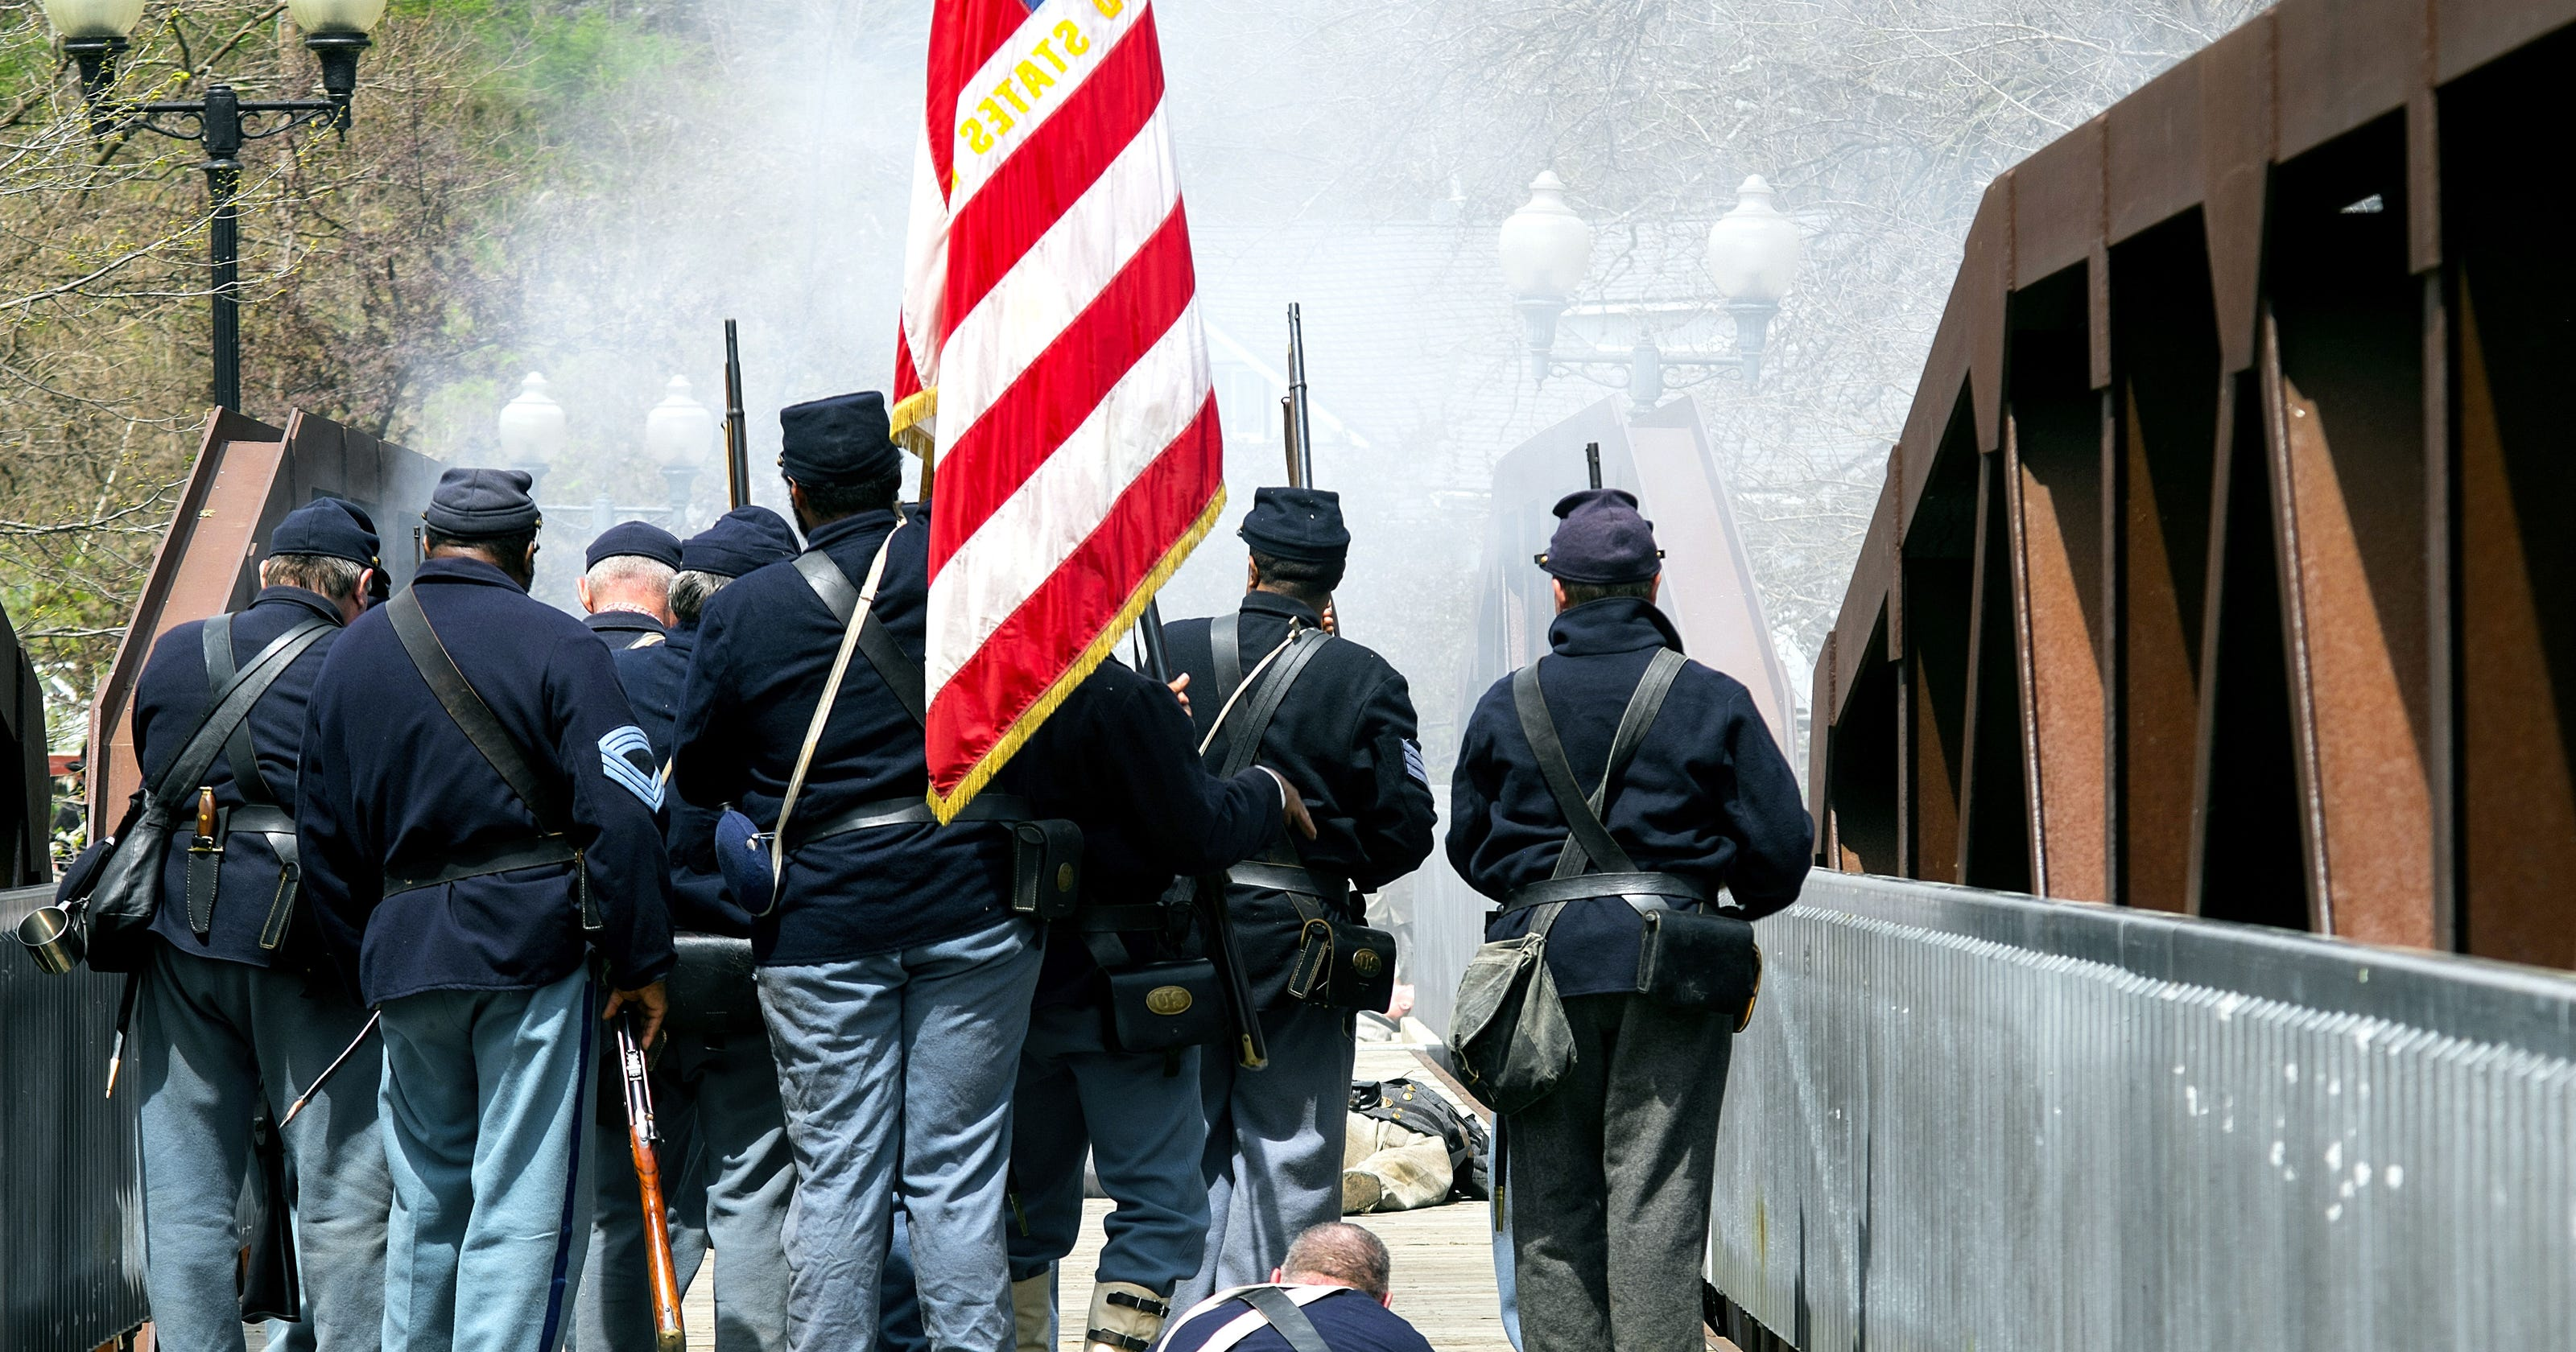 Muster up! Civil War re-enactors line up to fight again